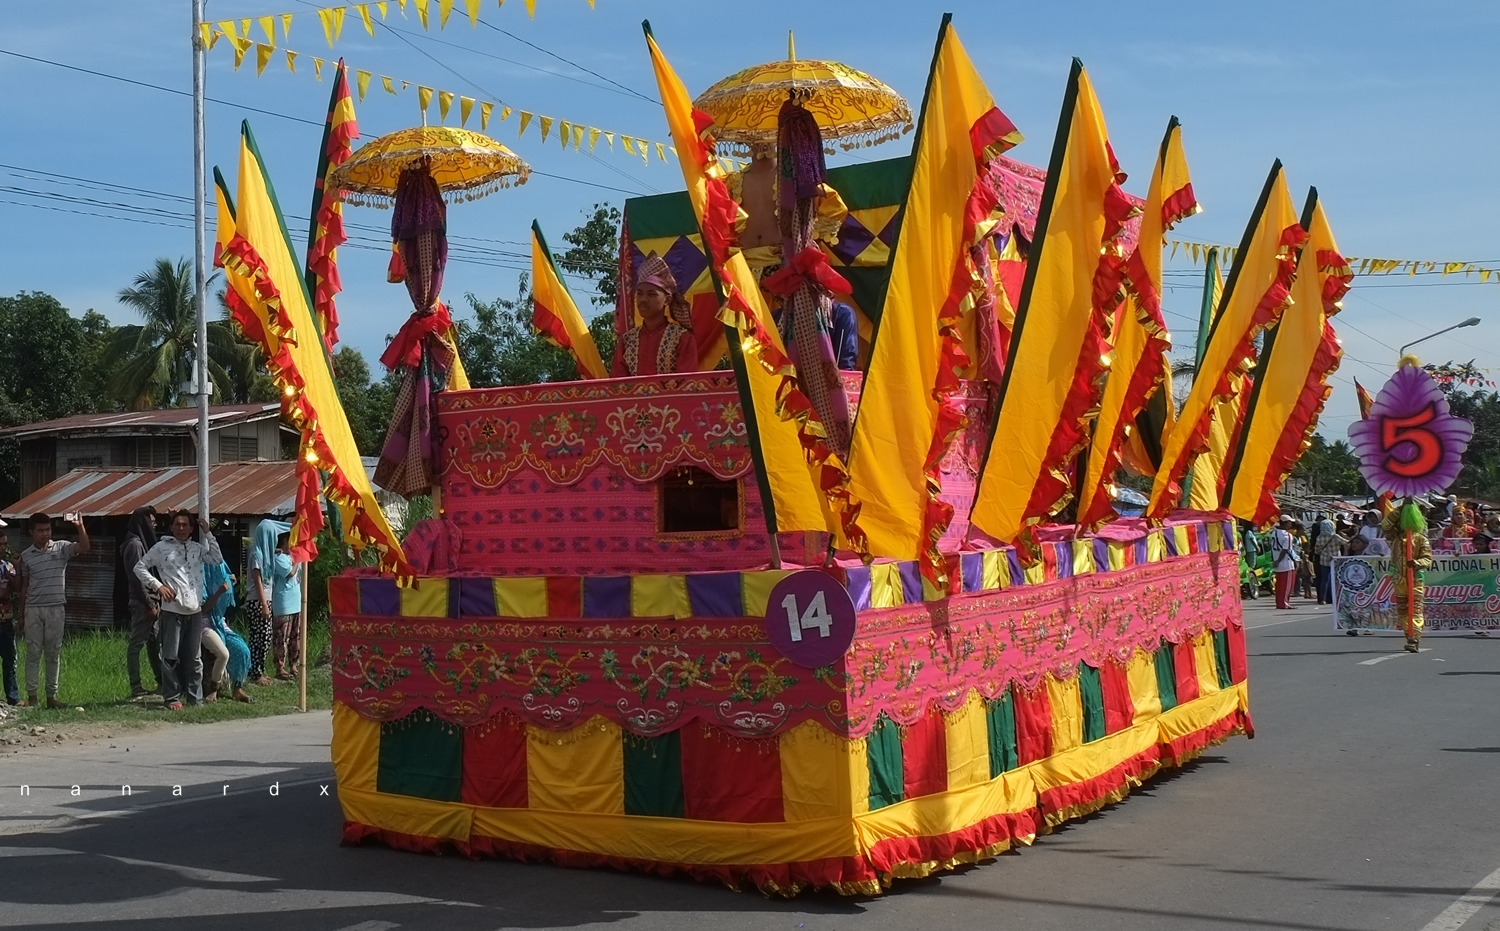 Inaul Festival Float Parade, An Amazing Display of Artistry and Culture